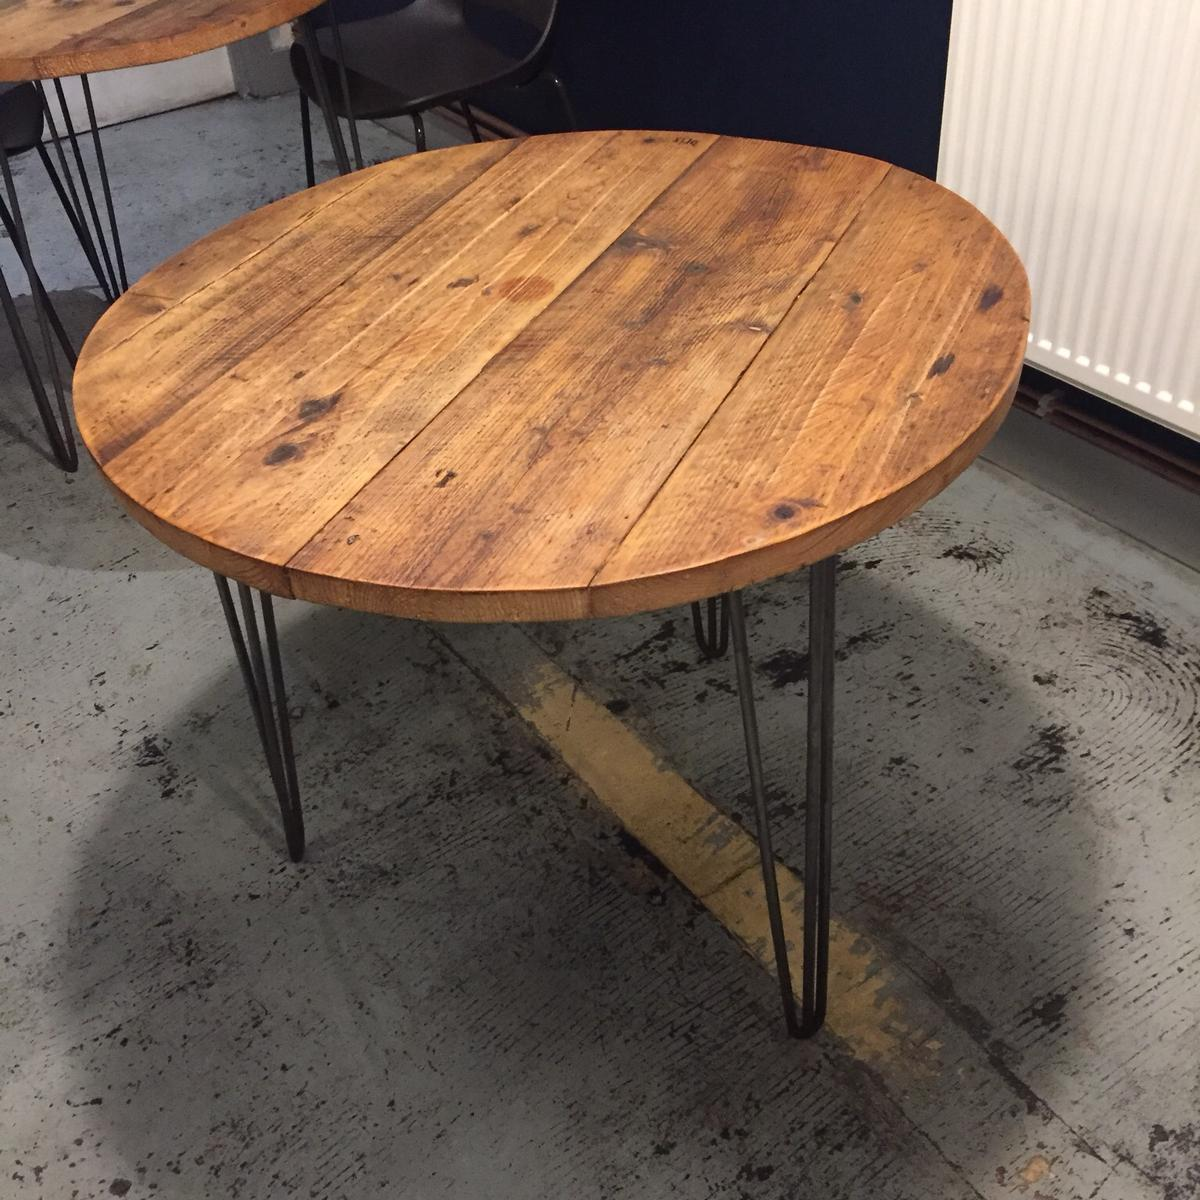 - Round Vintage Table With Hairpin Legs In SW9 London Für 90,00